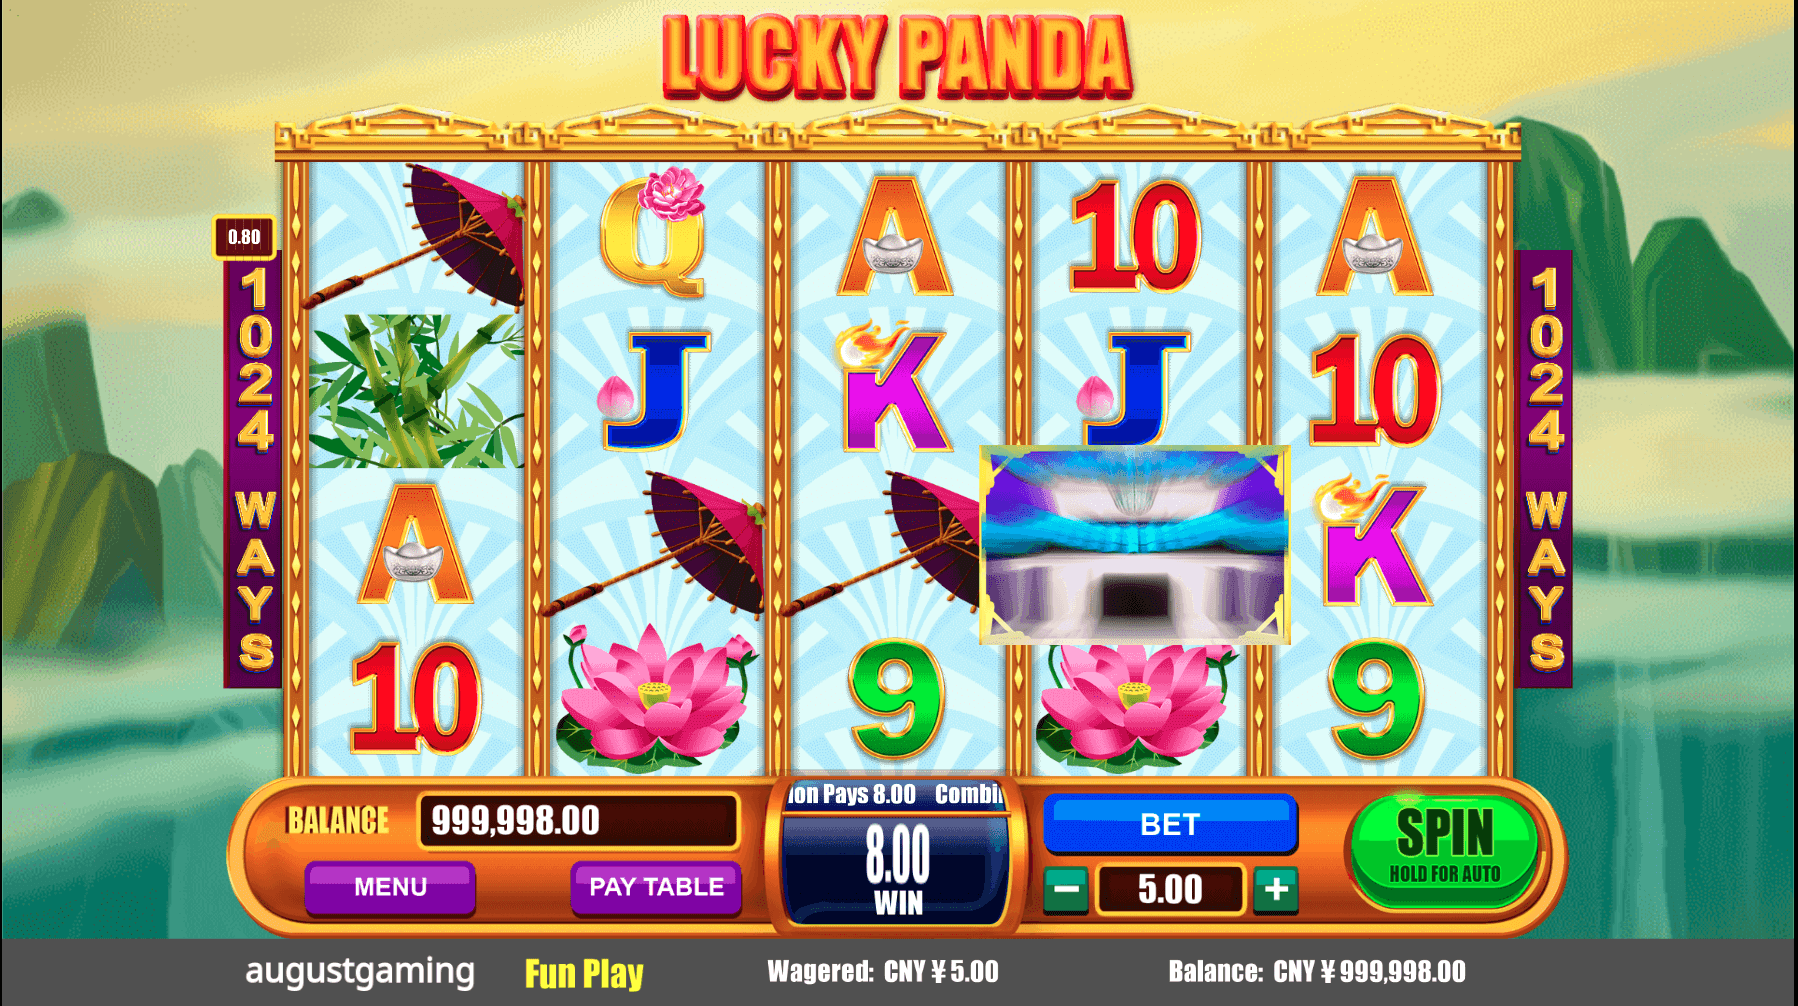 August Gaming Lucky Panda